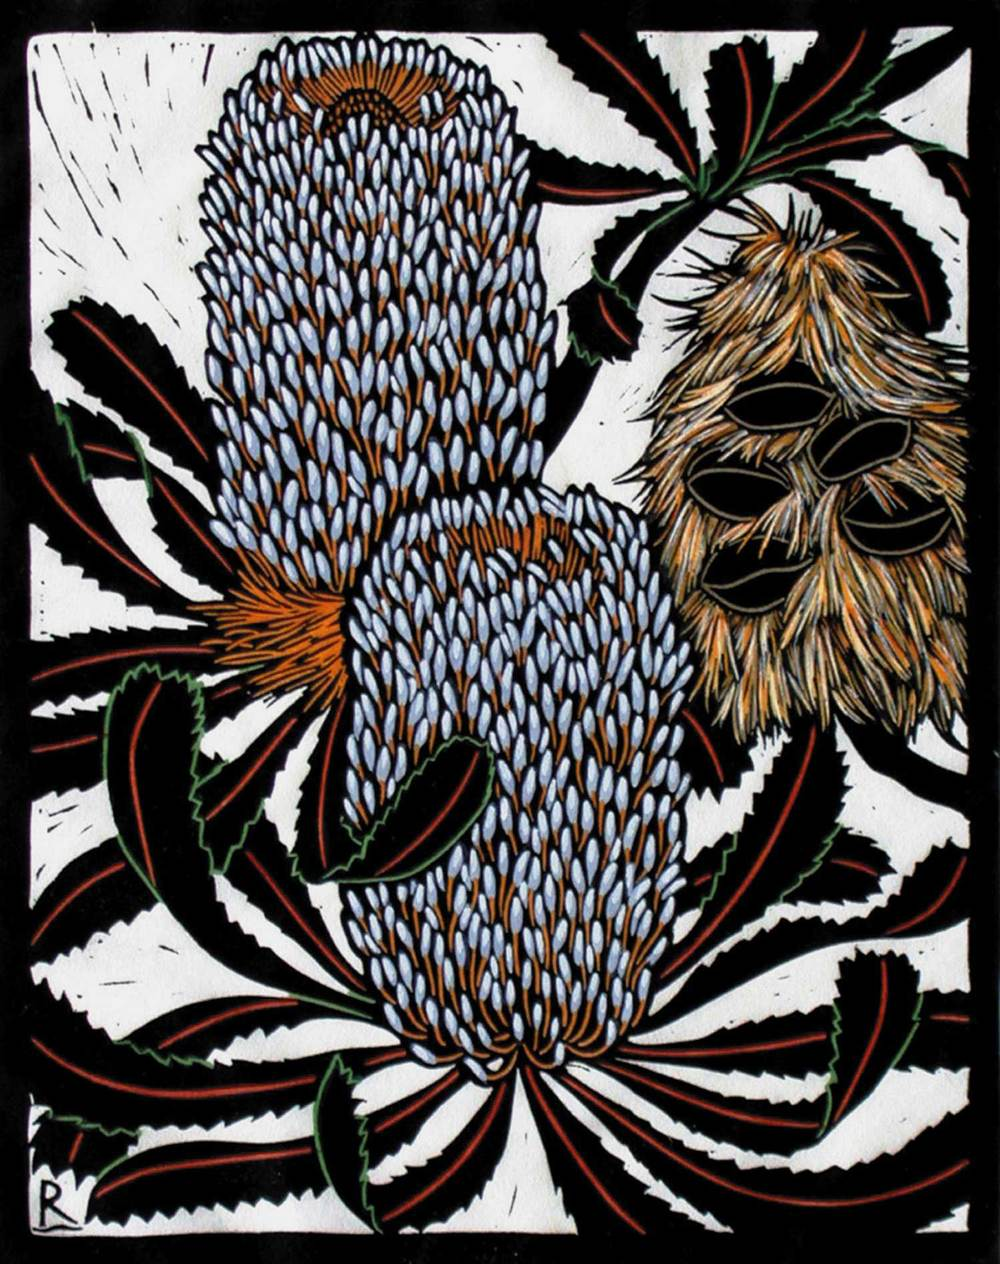 BANKSIA SERRATA  28 X 22 CM    EDITION OF 50  HAND COLOURED LINOCUT ON HANDMADE JAPANESE PAPER  $600